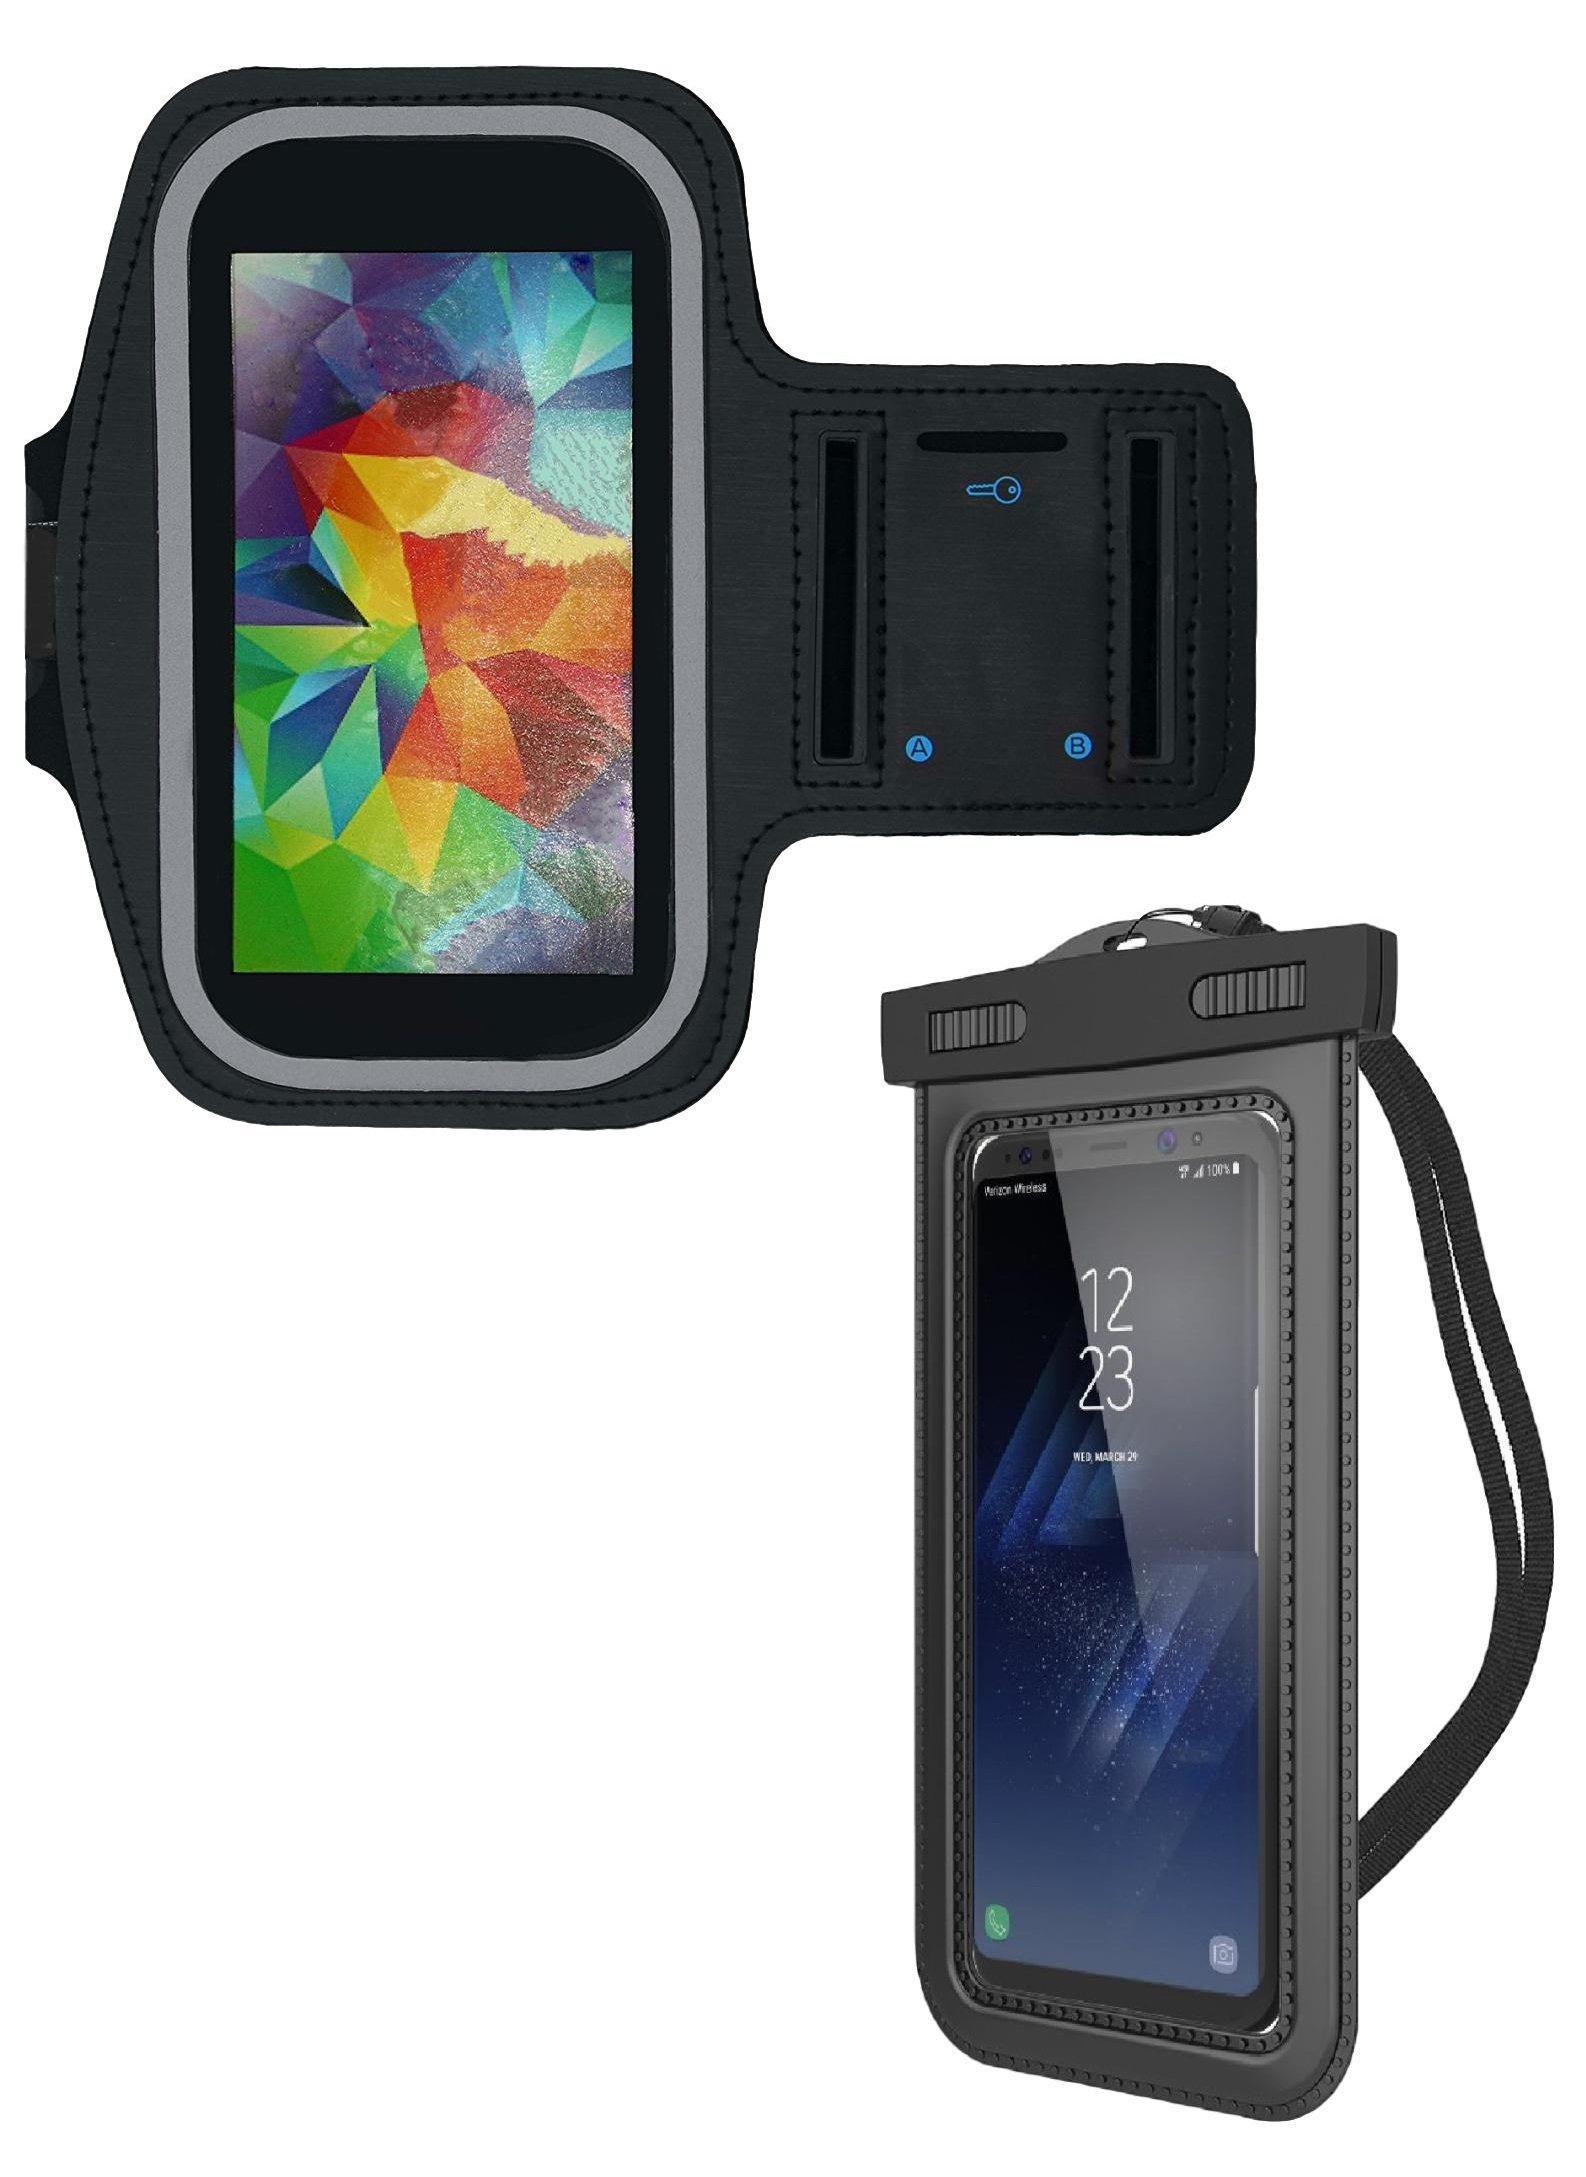 RJA Enterprises Universal Waterproof Cell Phone Case Bundle for Smartphones | Includes Armband Case For Exercise and Carrying Case For Everyday Use | Compatible With Both iPhone and Android Models